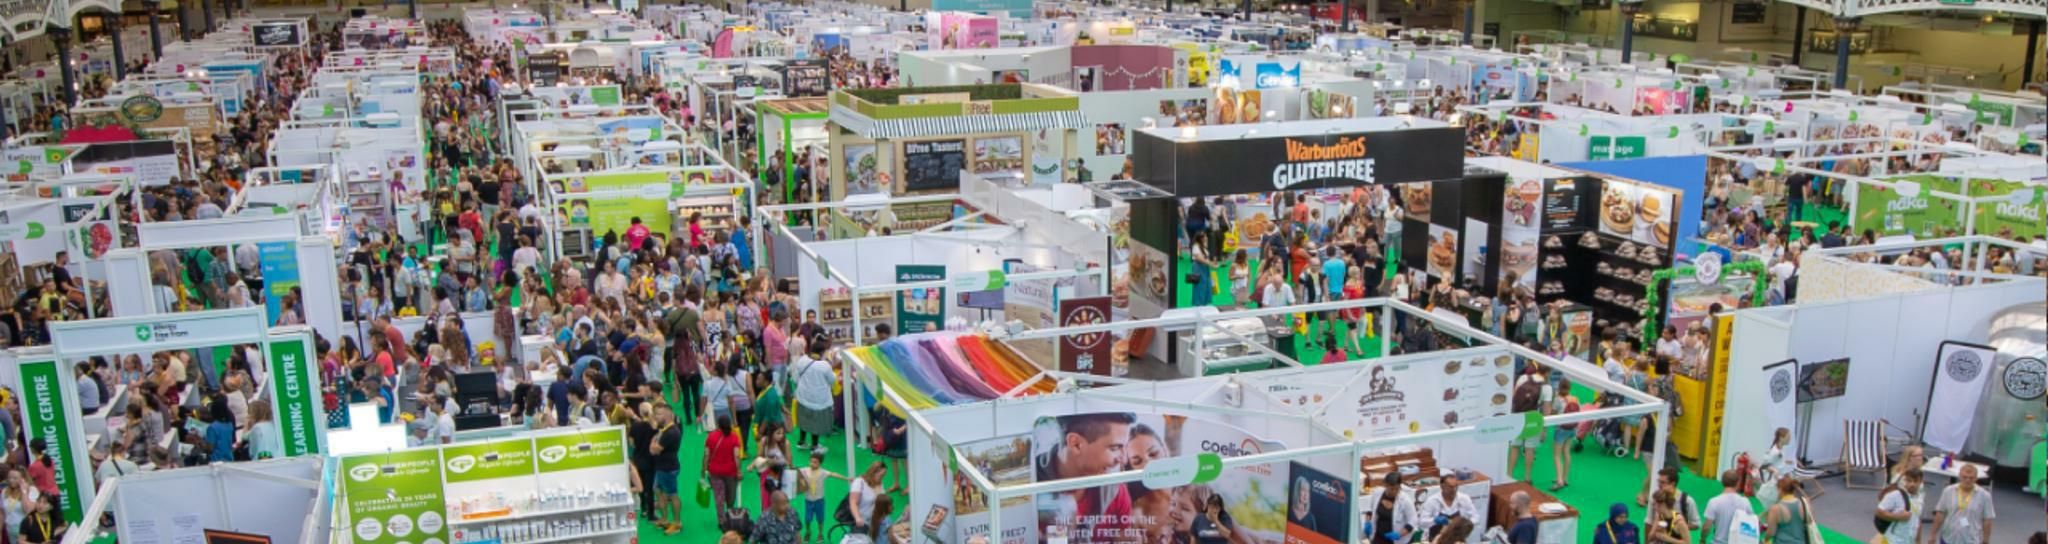 Interested in getting involved at The Allergy & Free From Show?